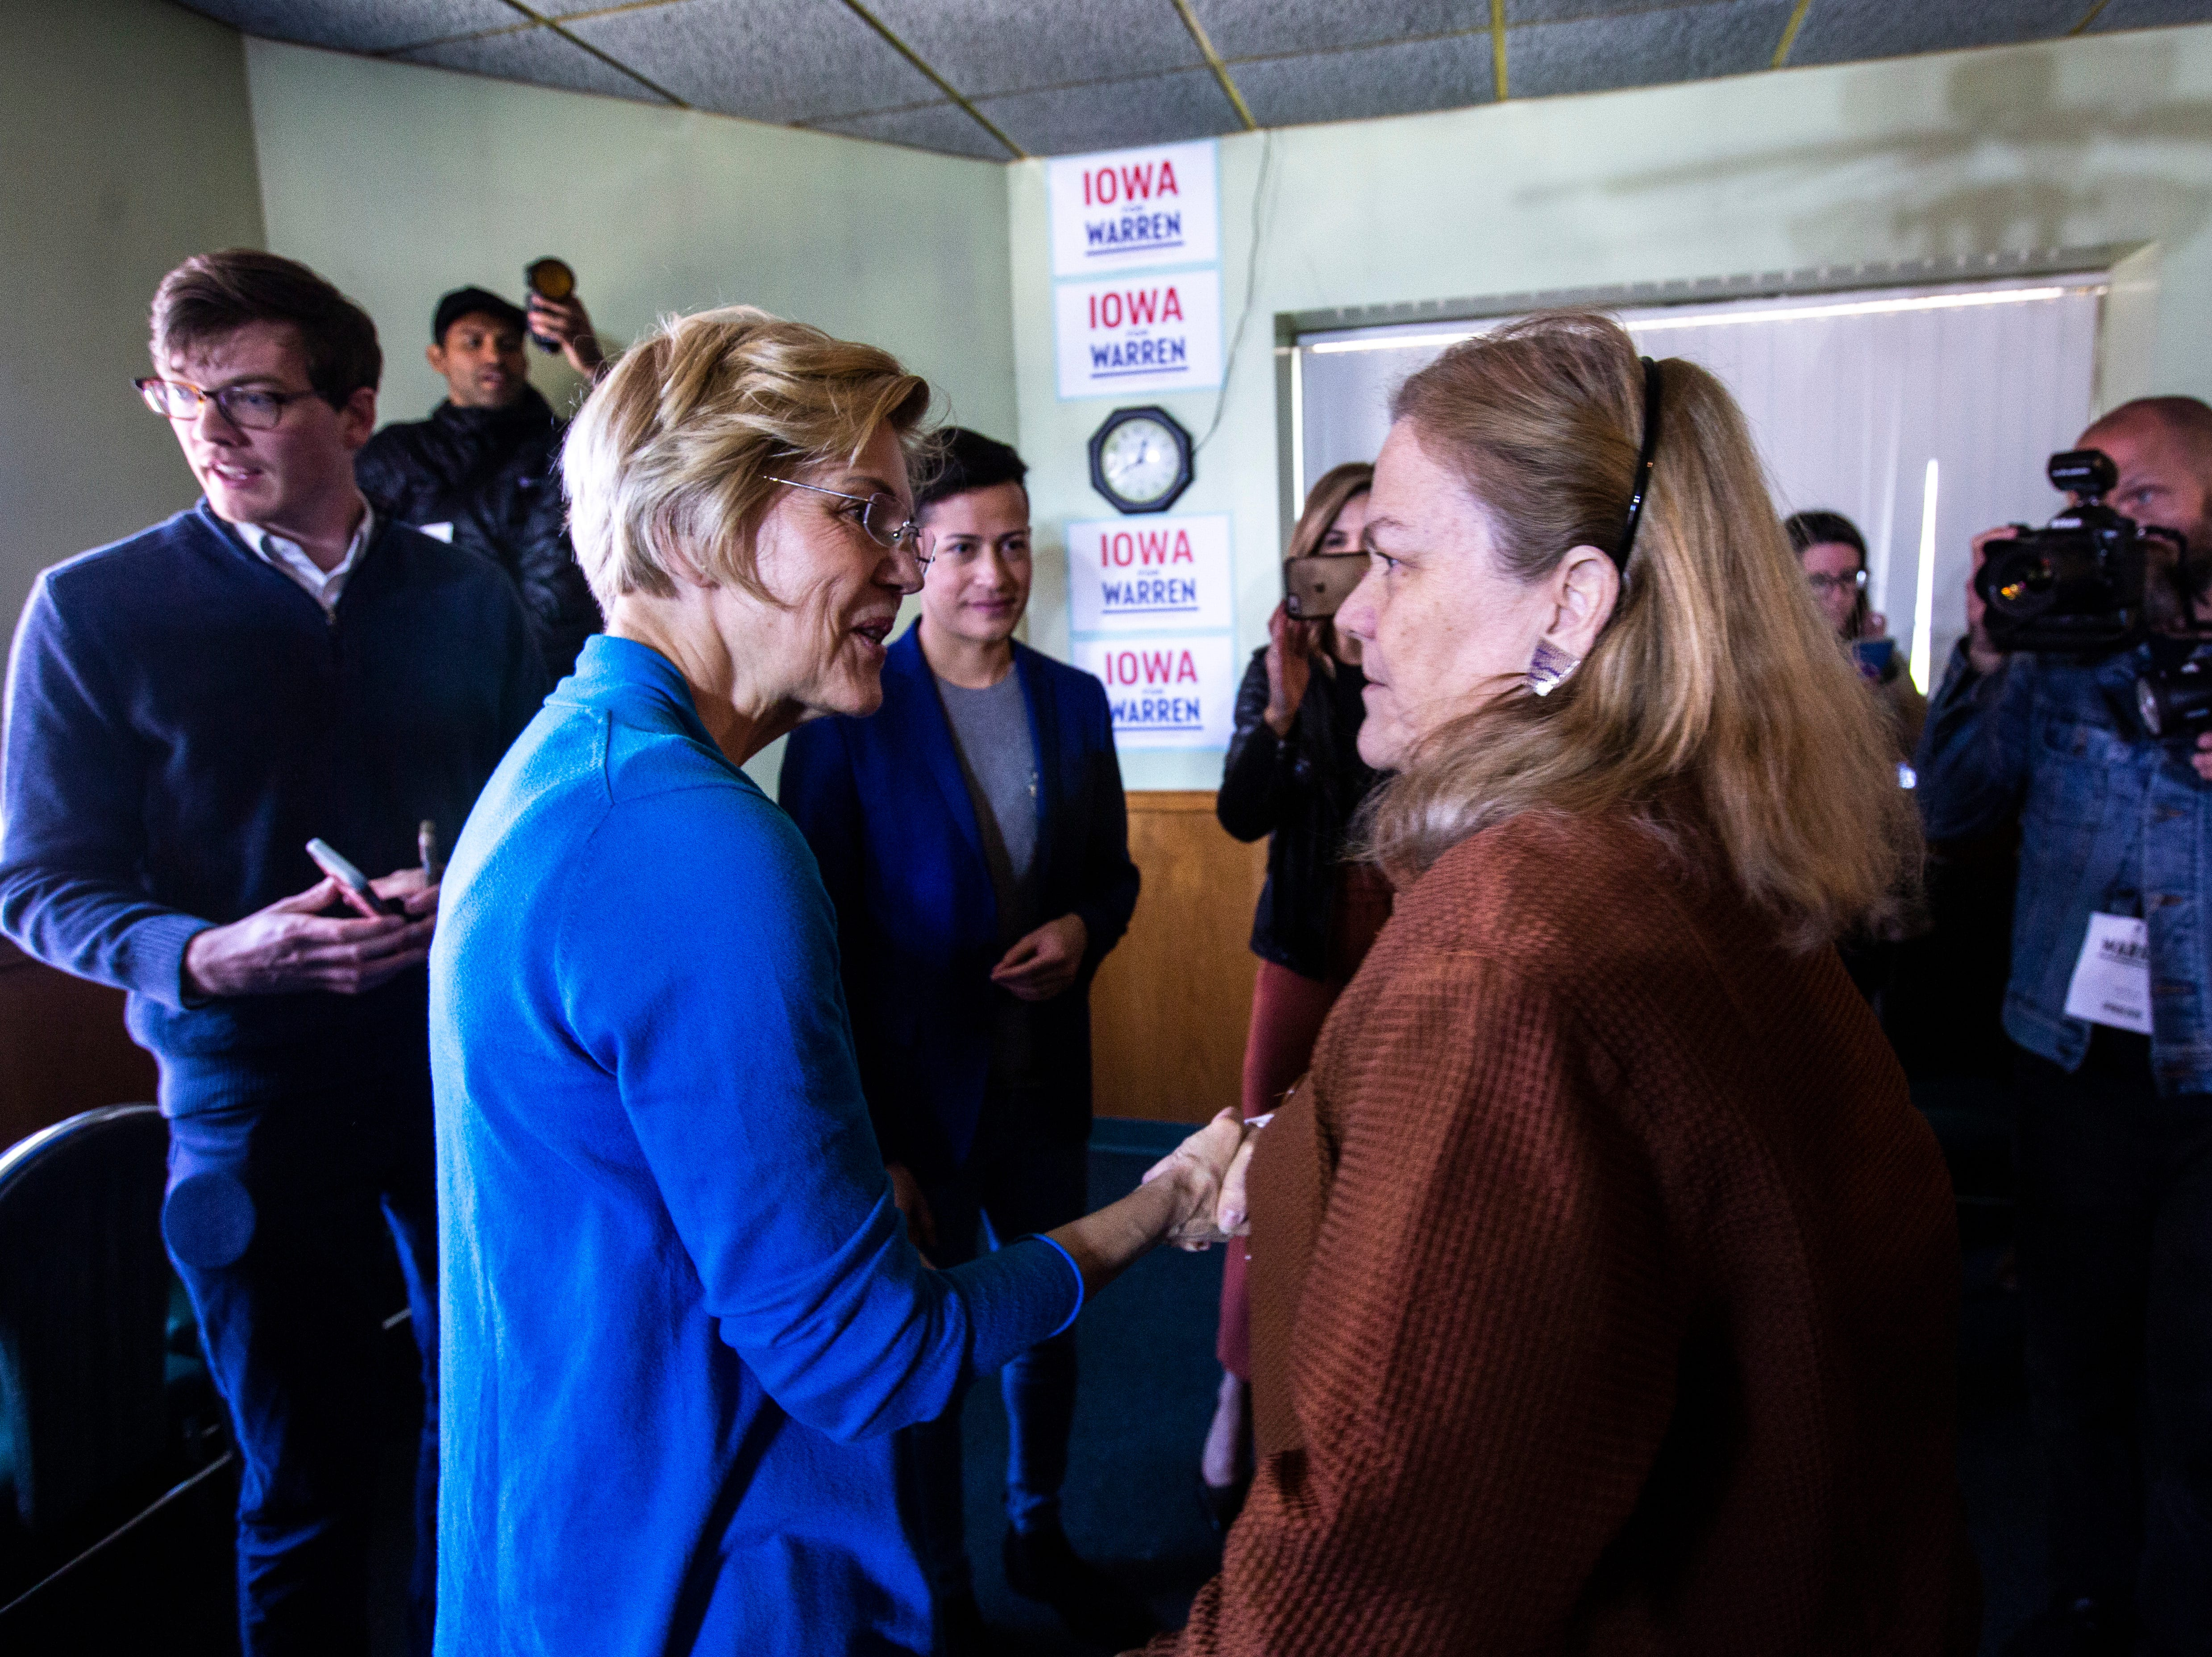 U.S. Sen. Elizabeth Warren, D-Mass., meets with people after a campaign event, Friday, April 26, 2019, at the Tipton Family Restaurant in Tipton, Iowa.